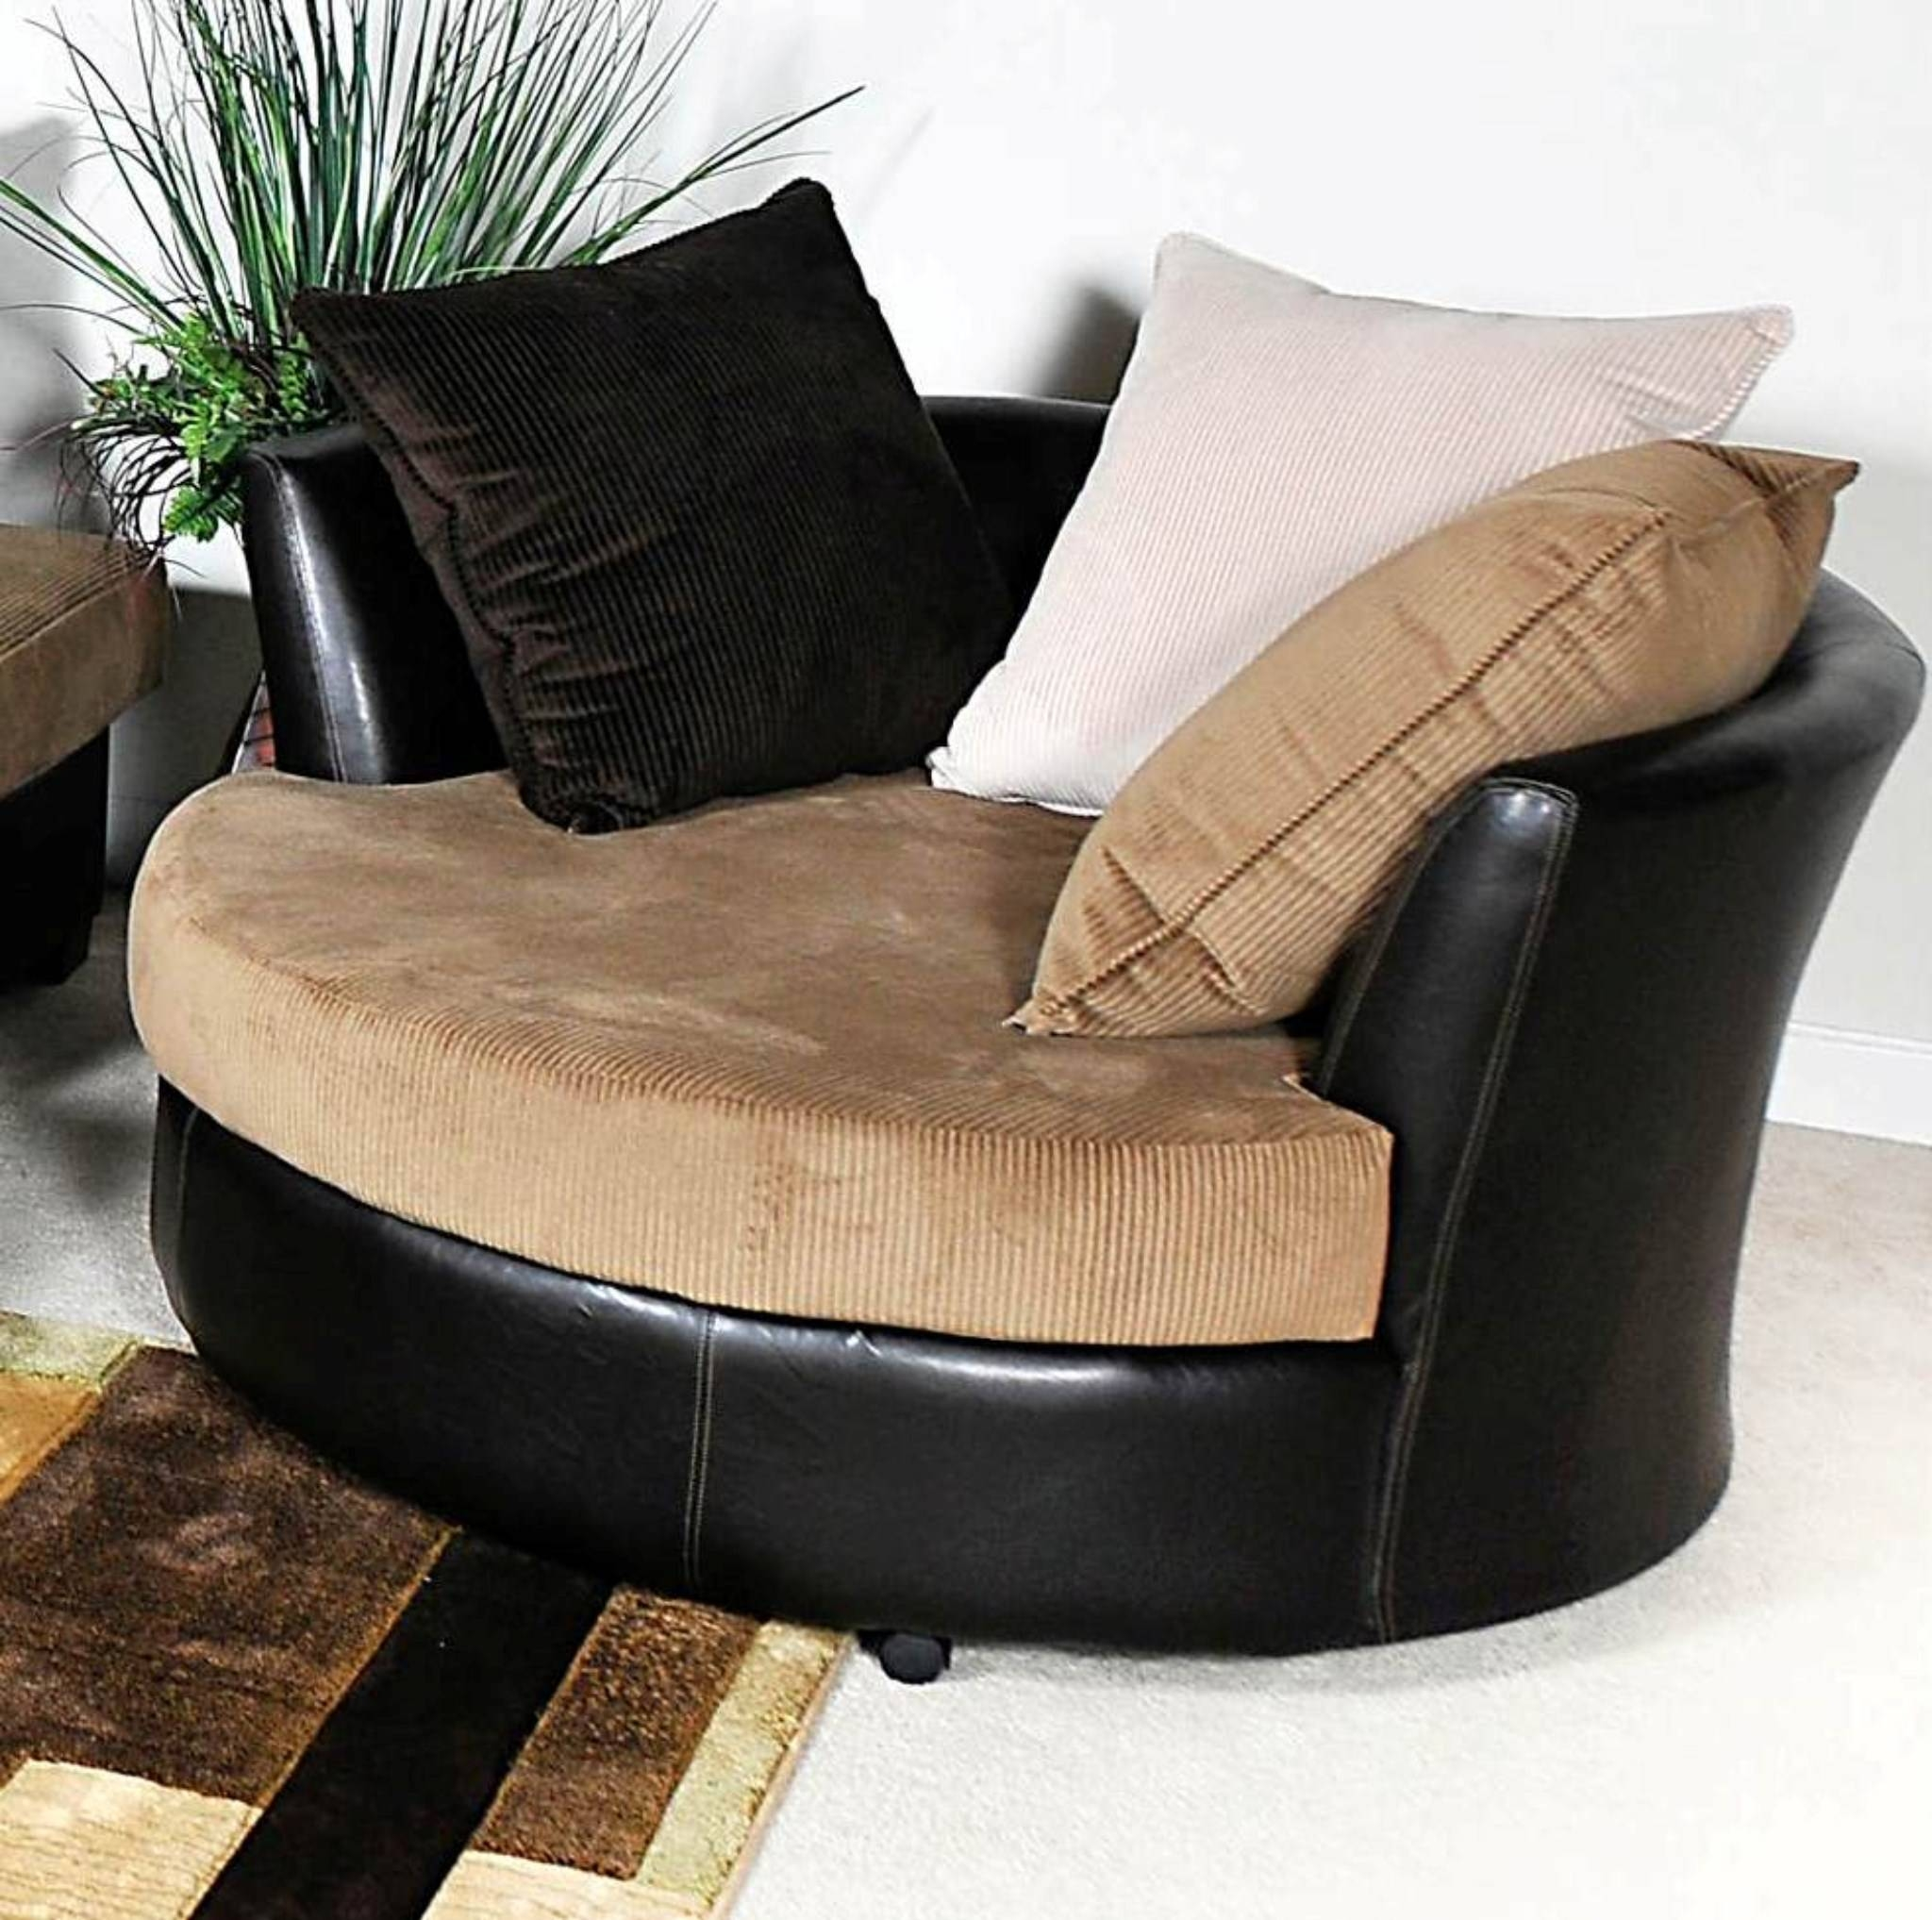 Sofas Center : Roundivel Chair Living Room Sofa And Setround inside Round Sofa Chair Living Room Furniture (Image 27 of 30)